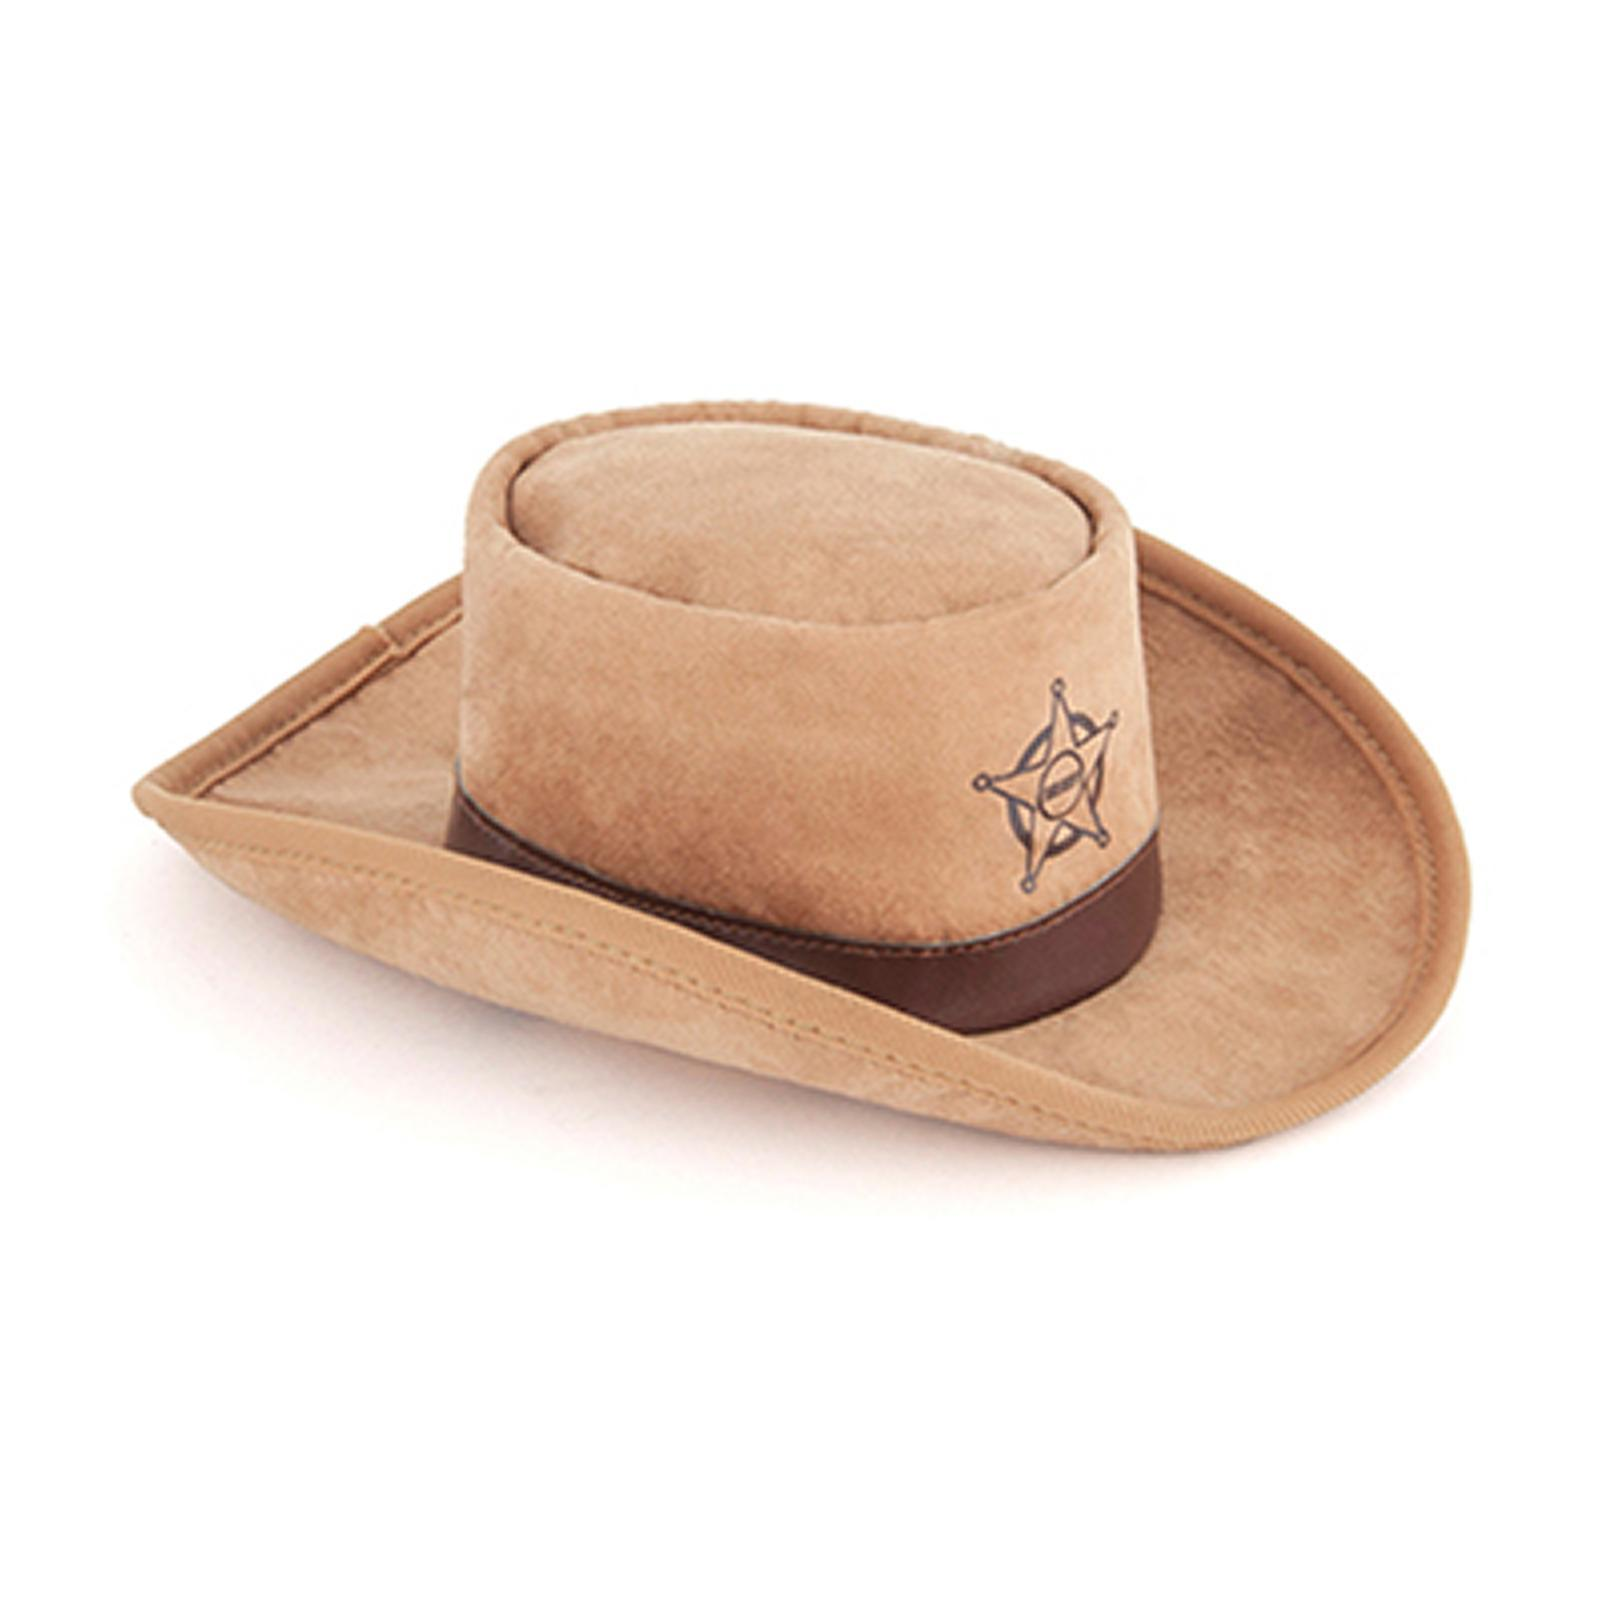 Ginger and Bear Dog Toy - Mutt Hatters : Sheriff Hat Toy